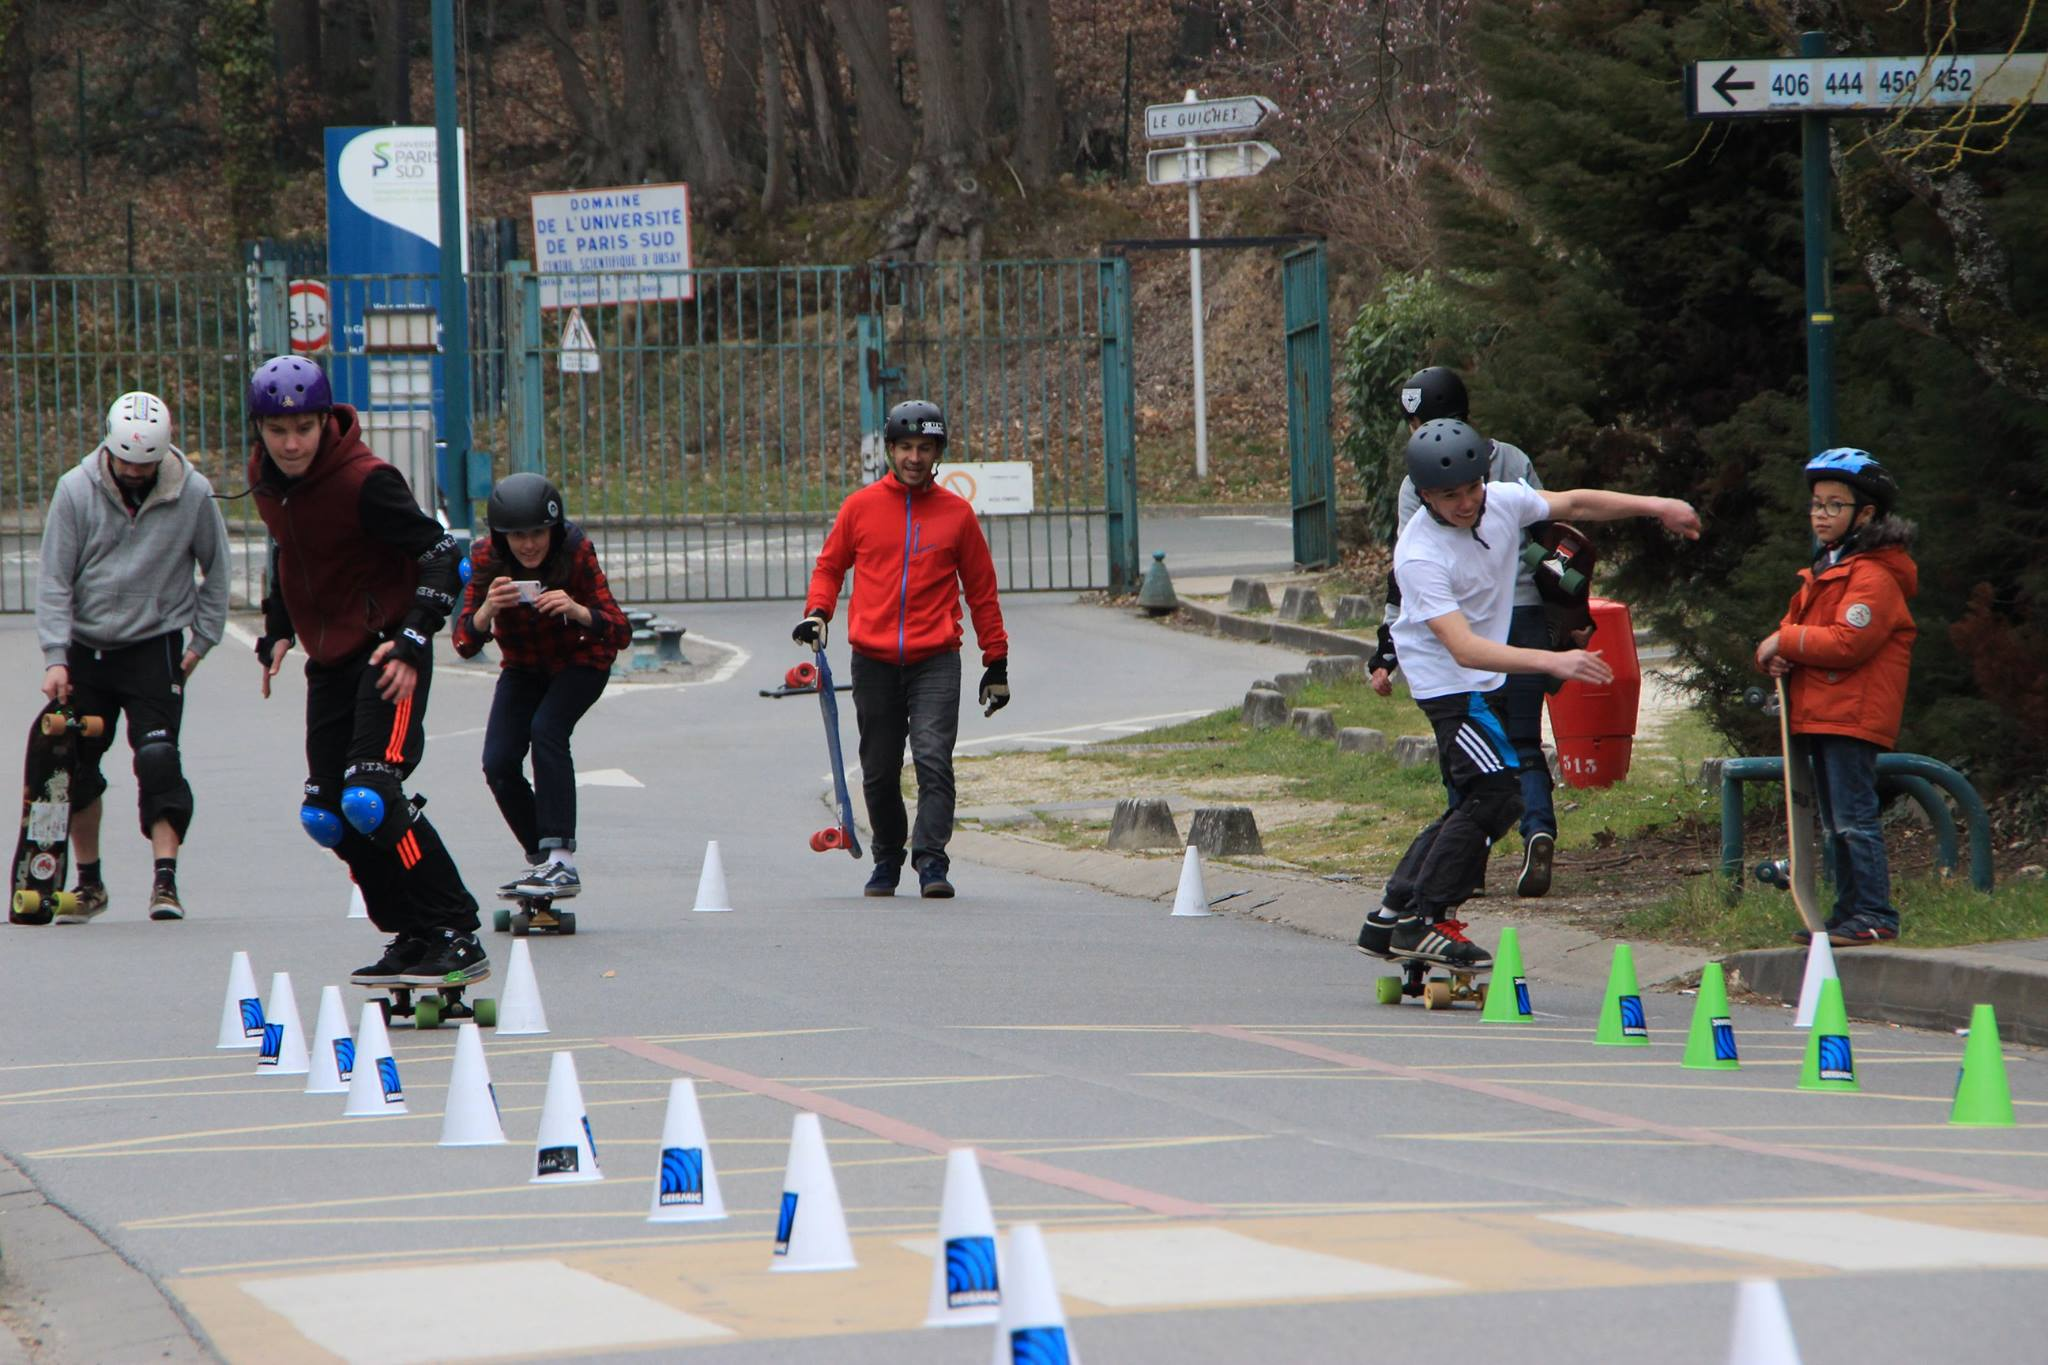 Les juniors à la course Pirate slalom skateboard d'Orsay